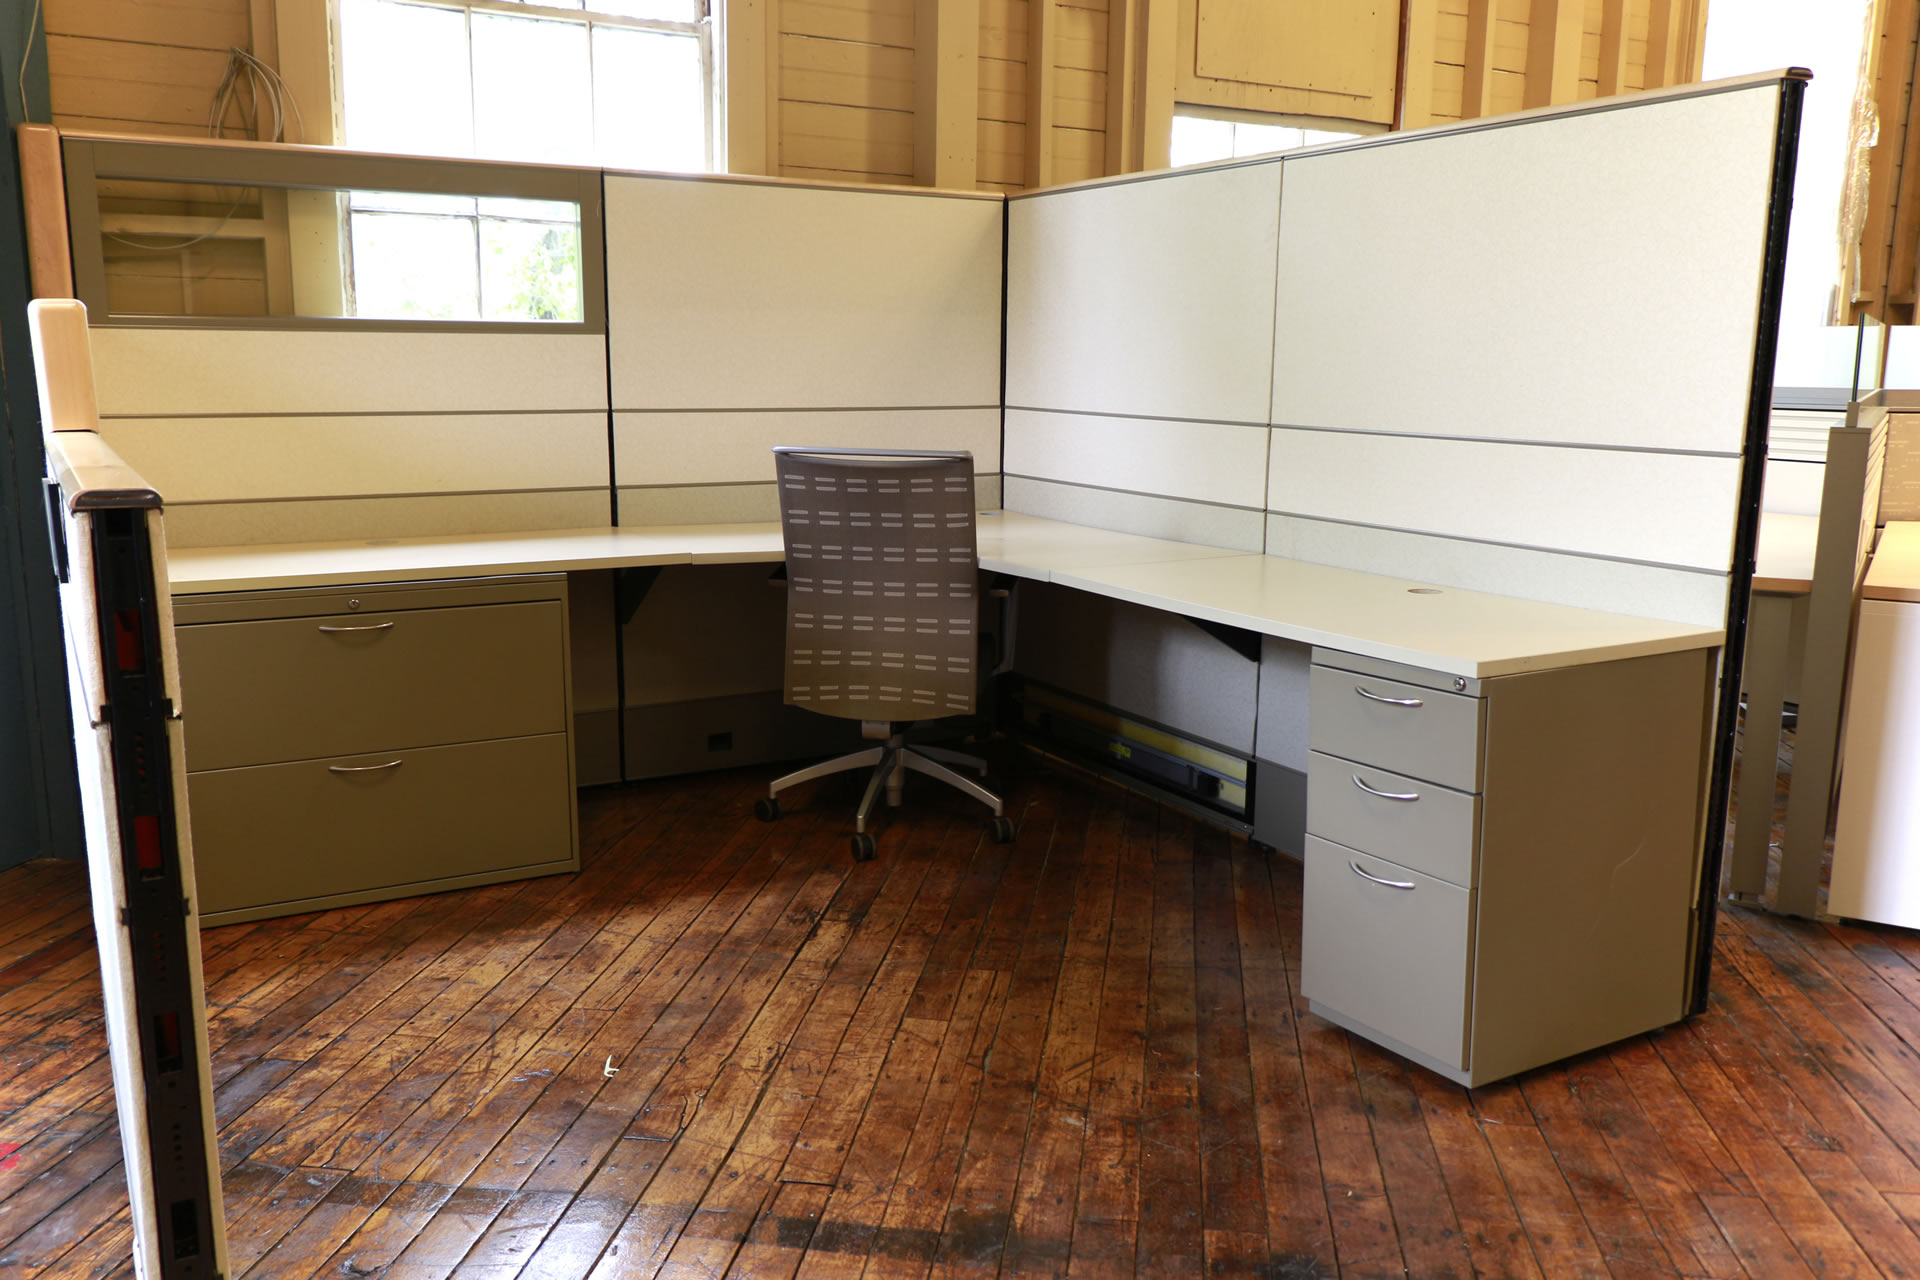 Ais Matrix 8 X 8 Cubicles Beige With Maple Trim